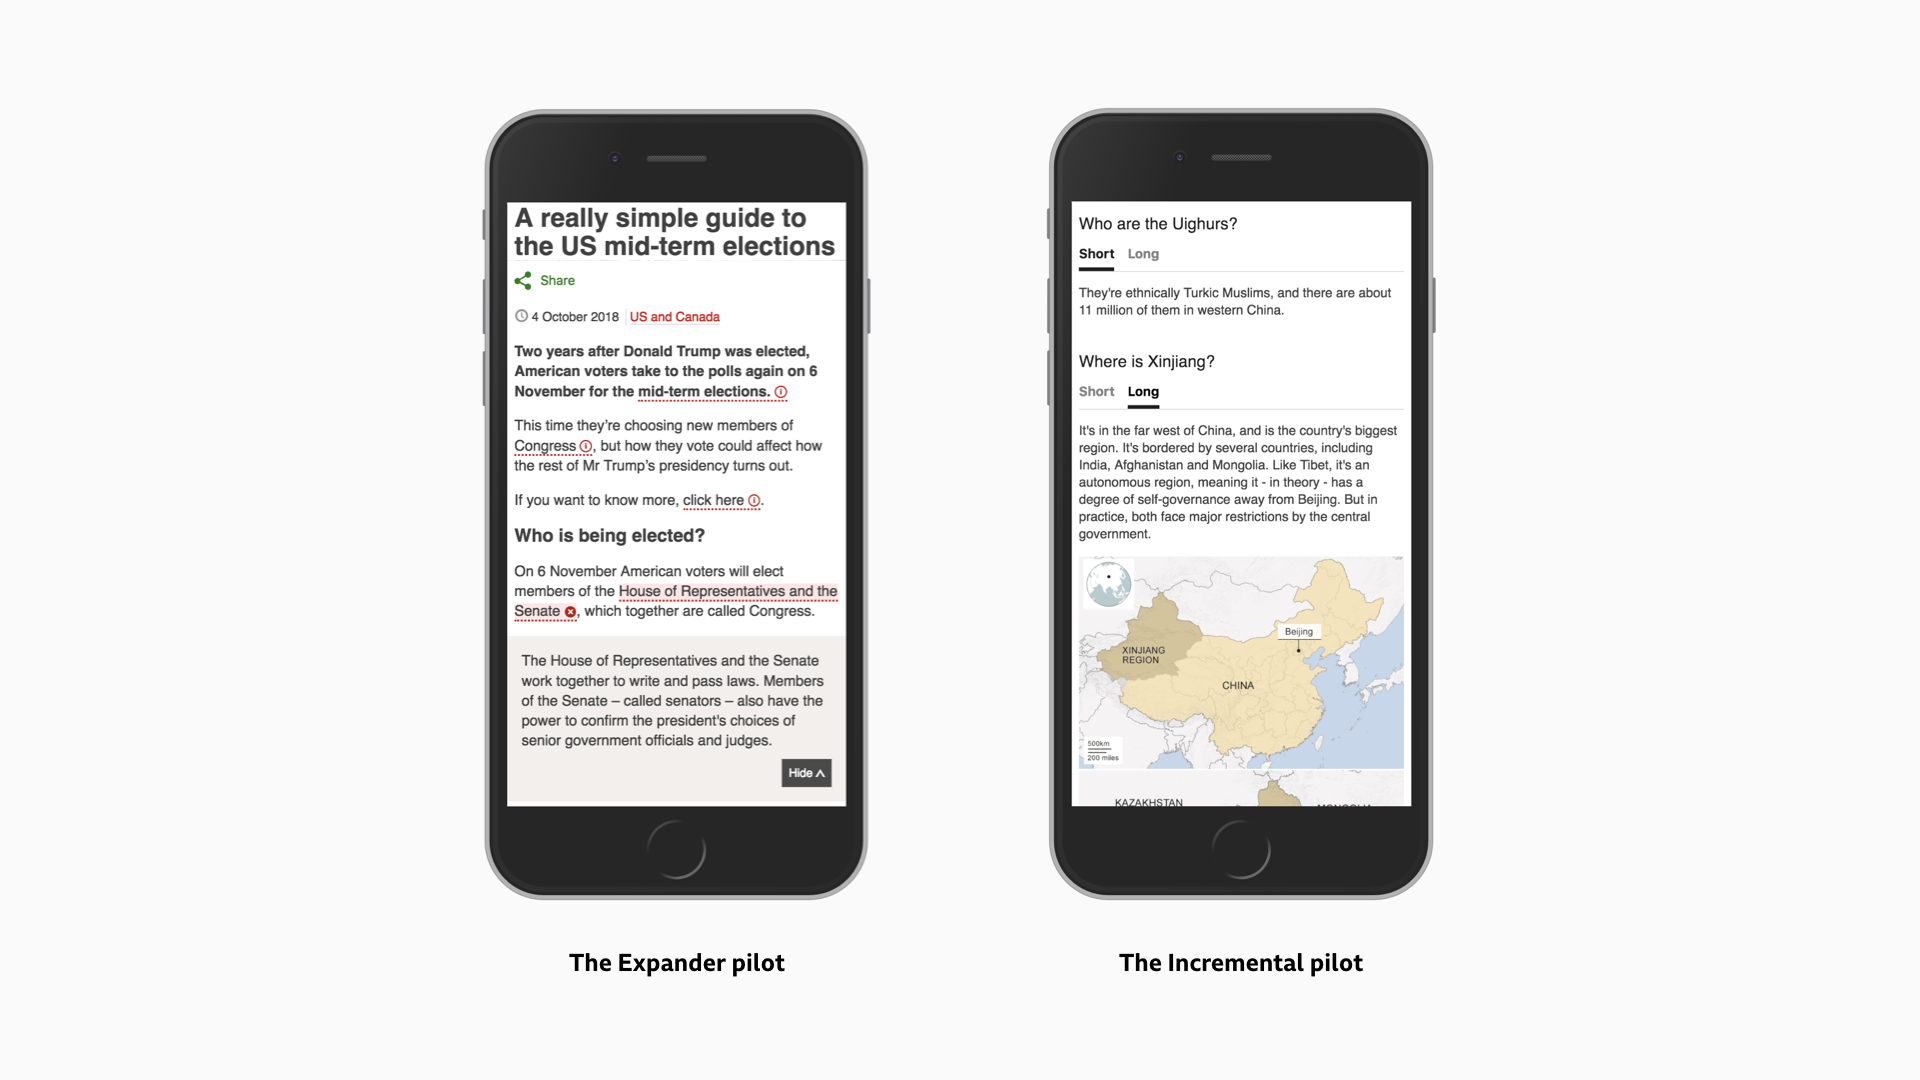 Screenshots showing the Expander and Incremental pilots on published BBC News articles.